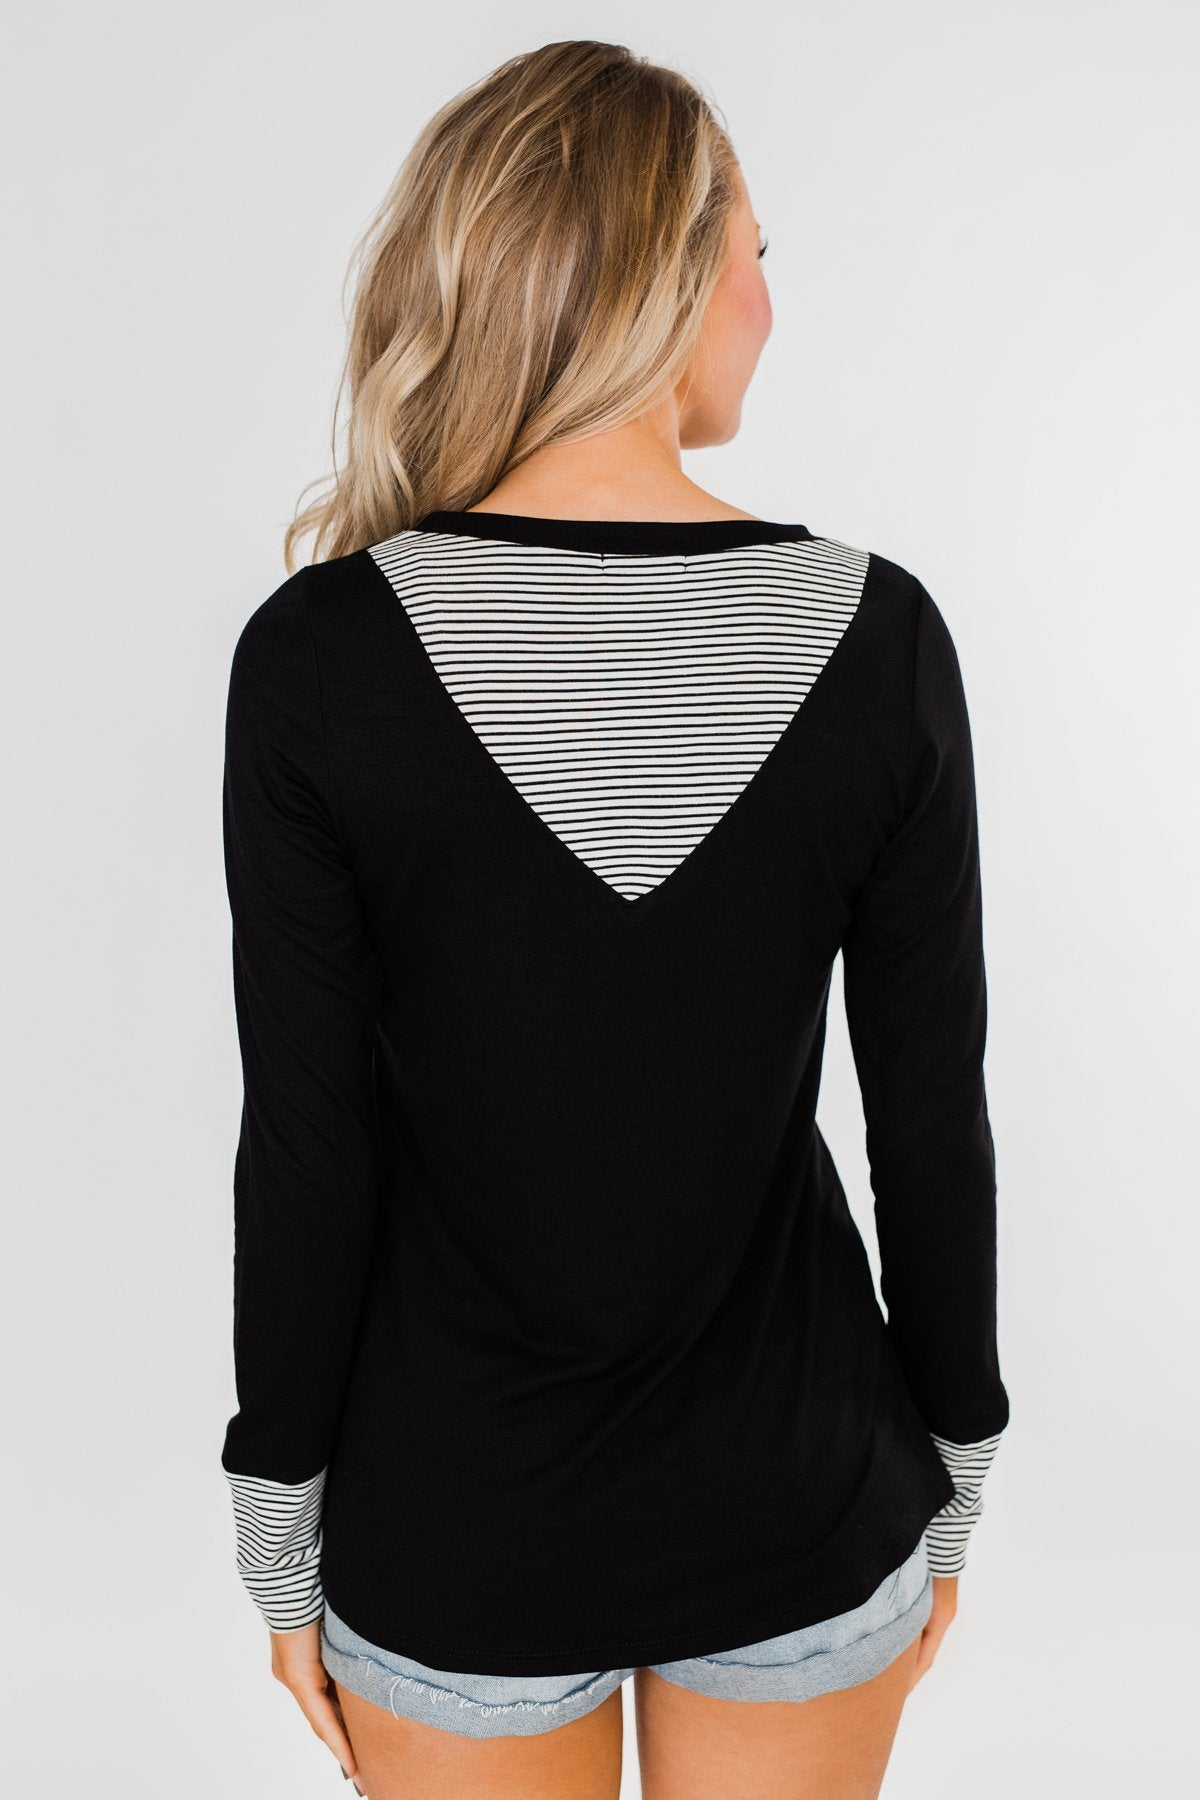 Special to Me Striped Detail Long Sleeve Top- Black